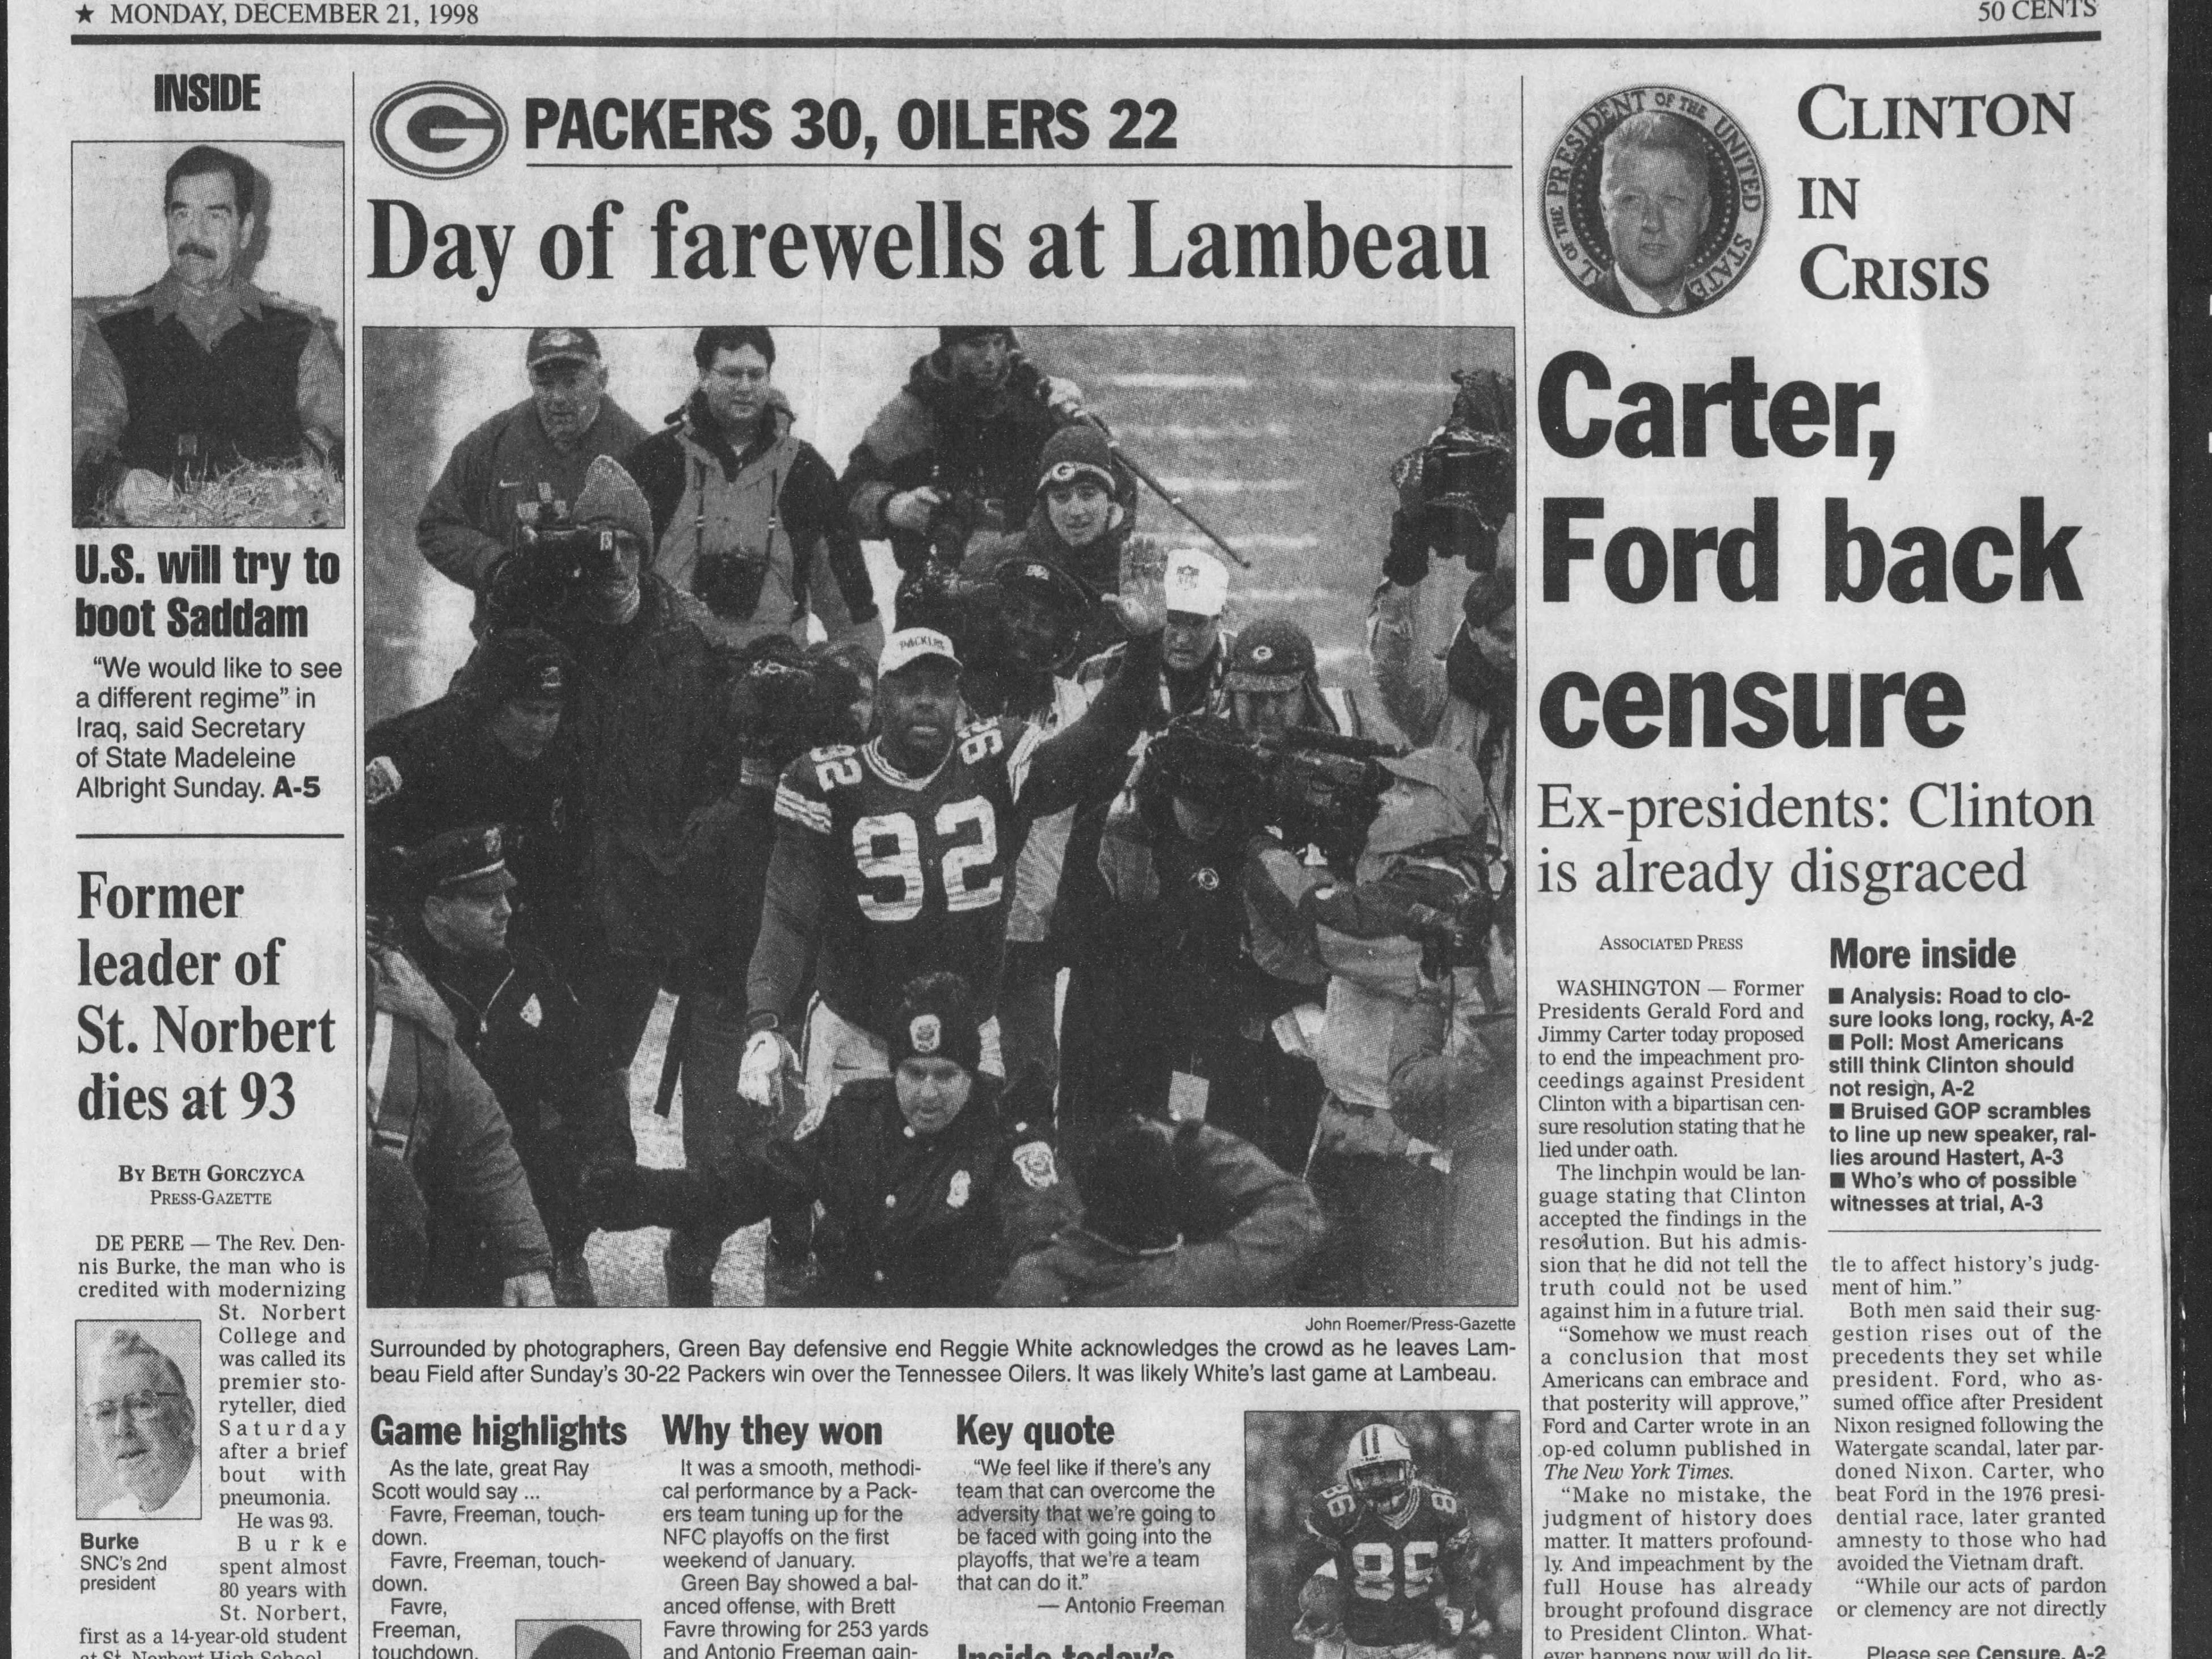 Today in History: Dec. 21, 1998